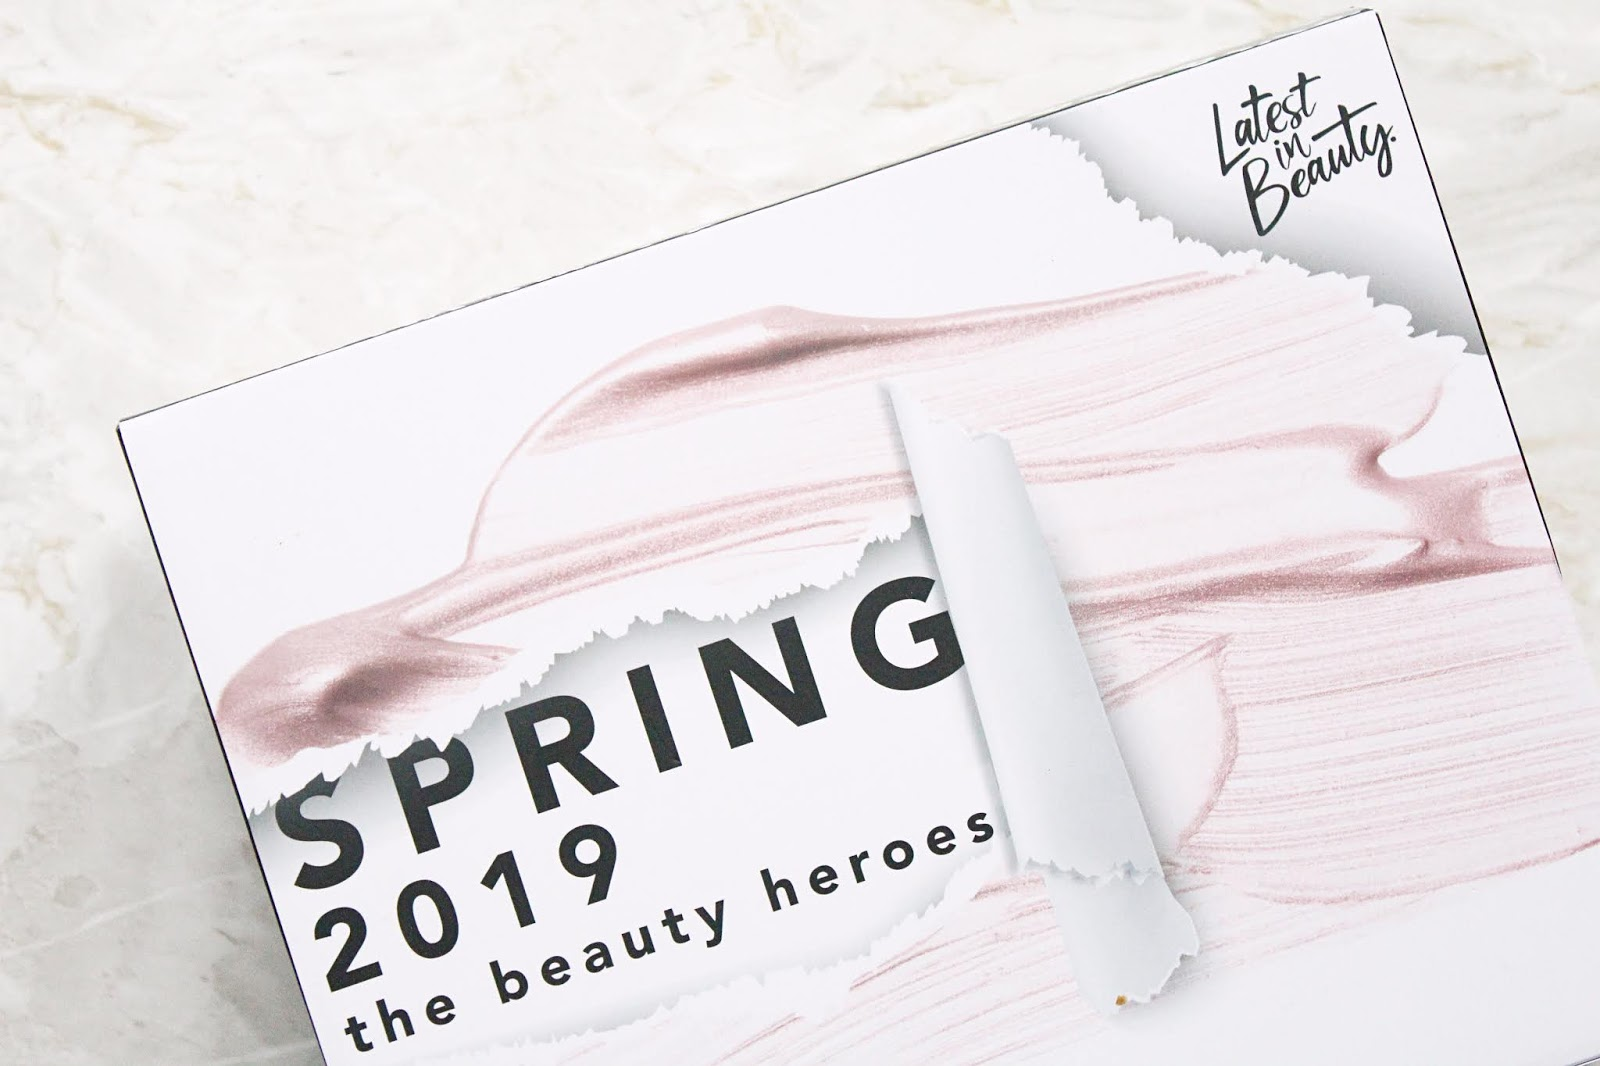 Latest in Beauty Spring 2019 The Beauty Heroes Box